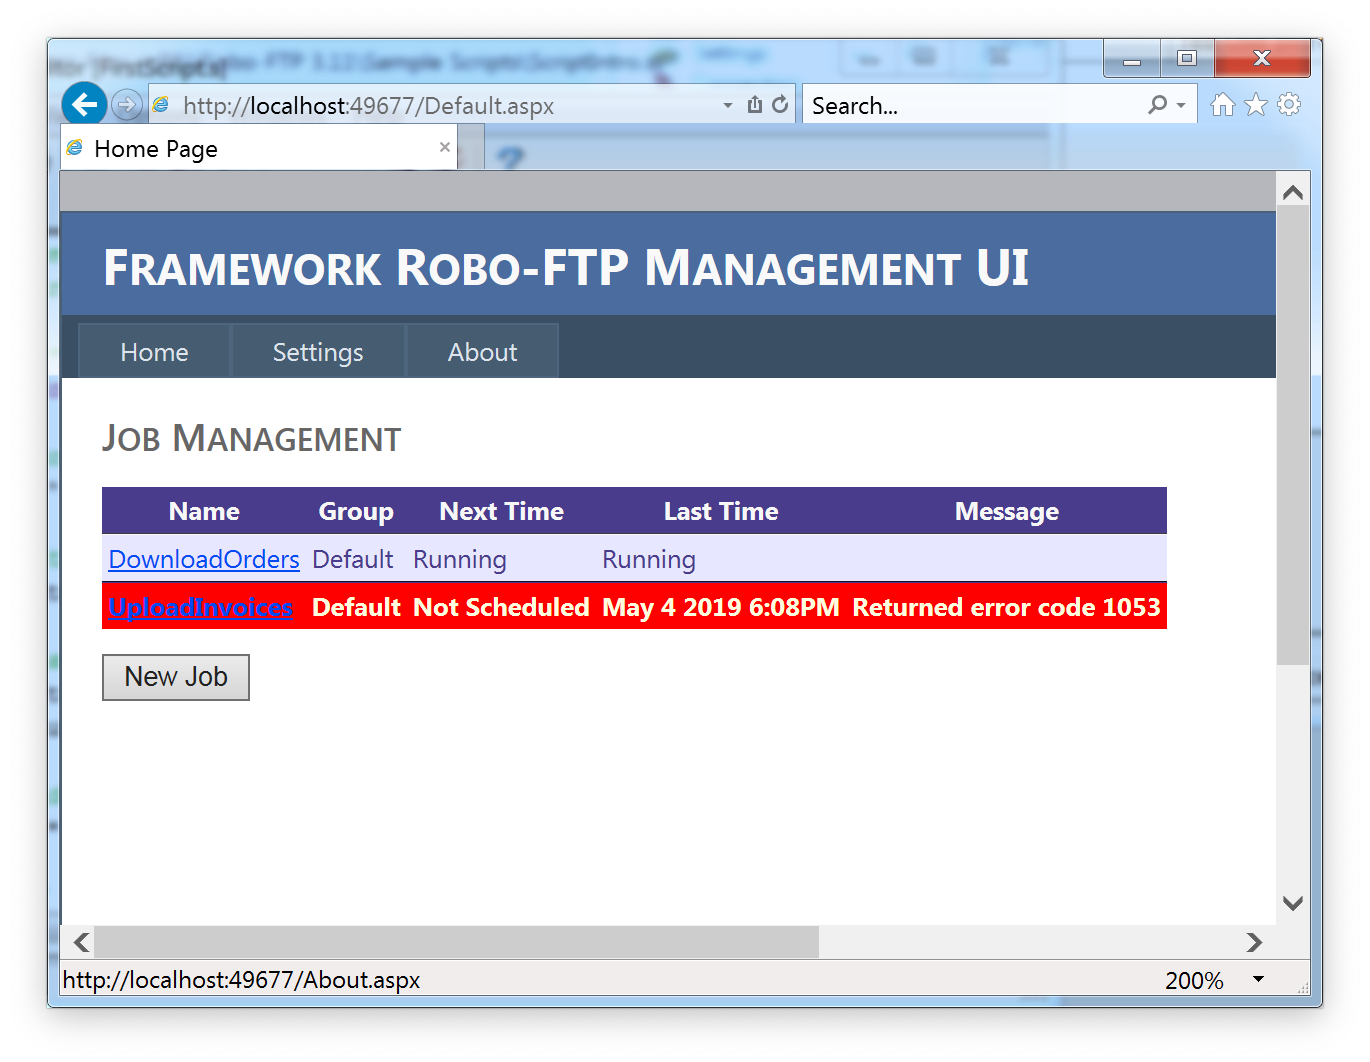 Robo-FTP Enterprise Framework